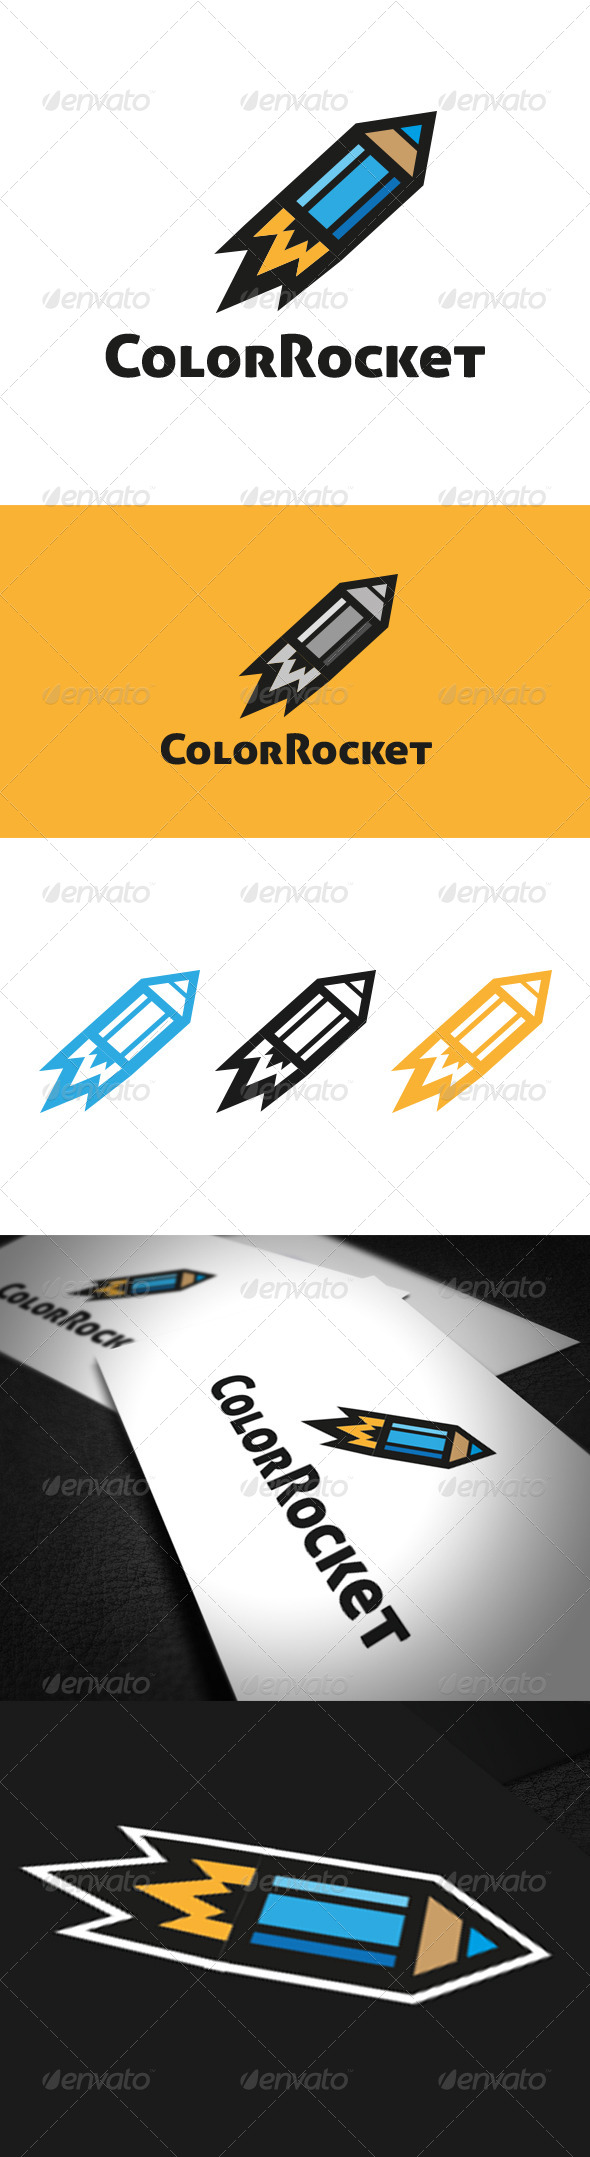 Color Rocket Logo Template - Vector Abstract